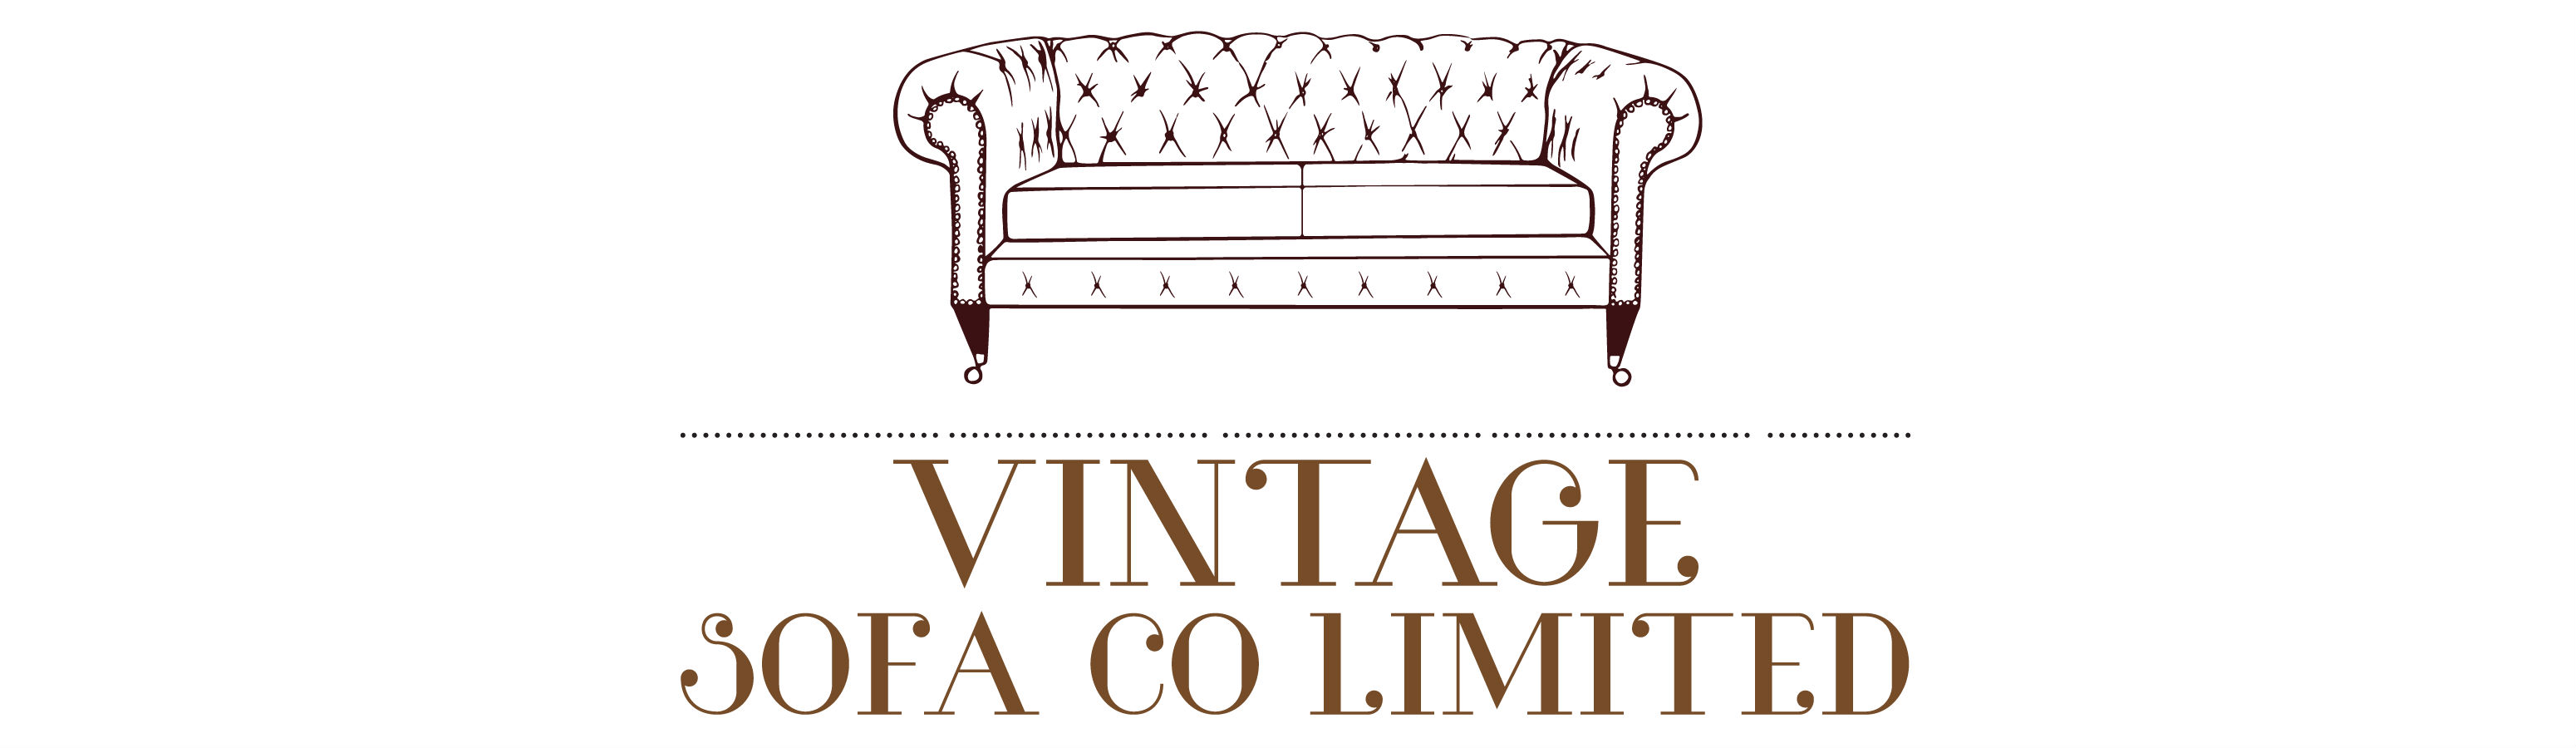 Read Vintage Sofa Co Limited Reviews